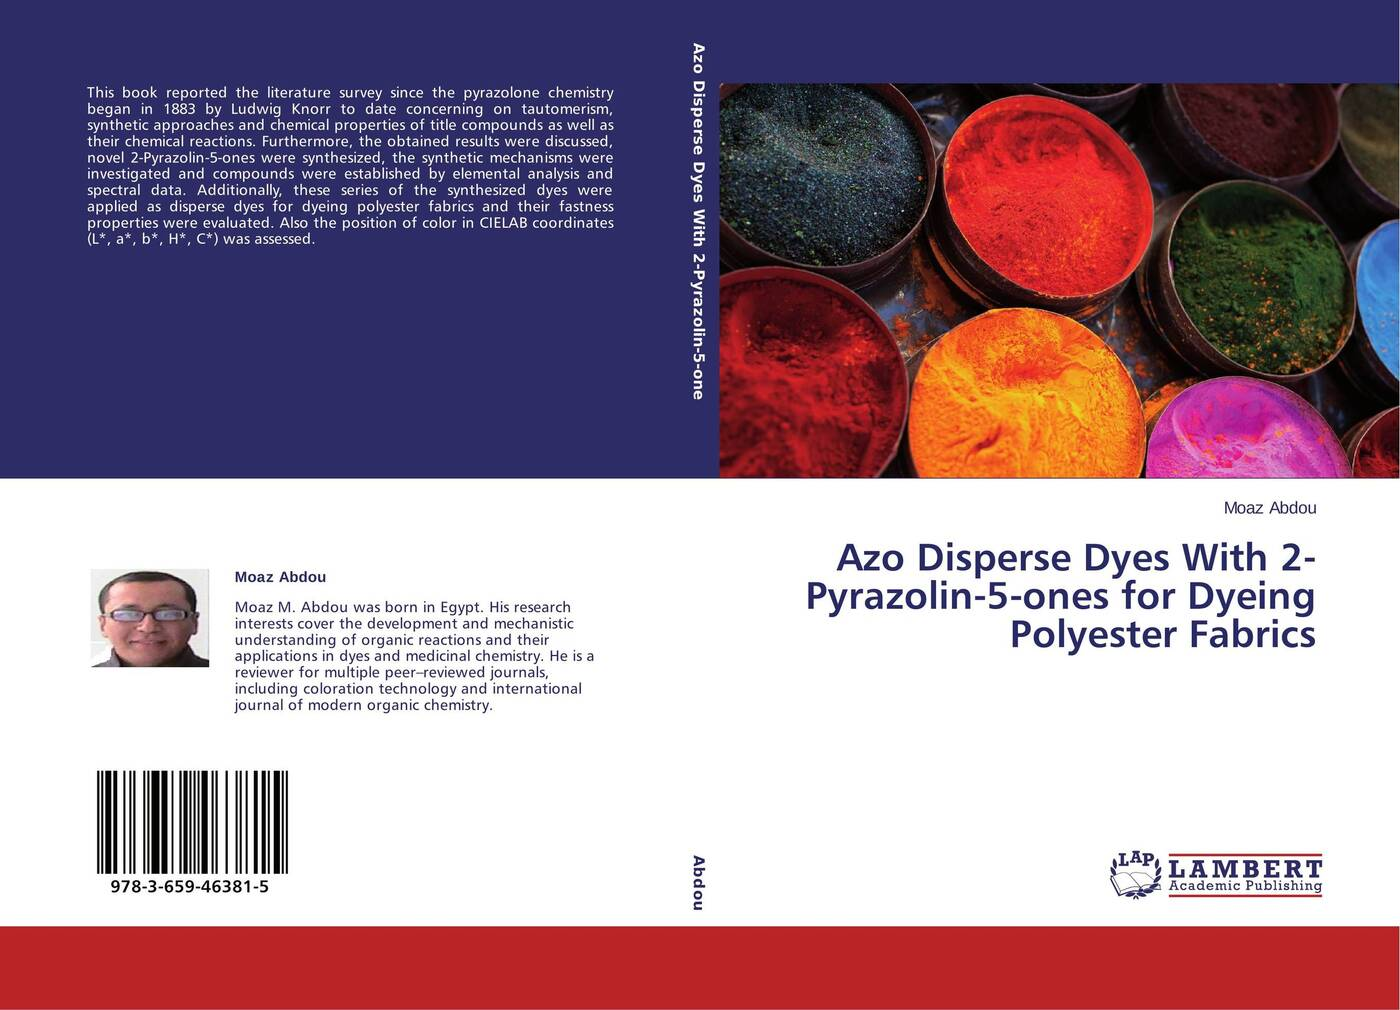 Moaz Abdou Azo Disperse Dyes With 2-Pyrazolin-5-ones for Dyeing Polyester Fabrics synthesis and performance studies of anthraquinone disperse dyes